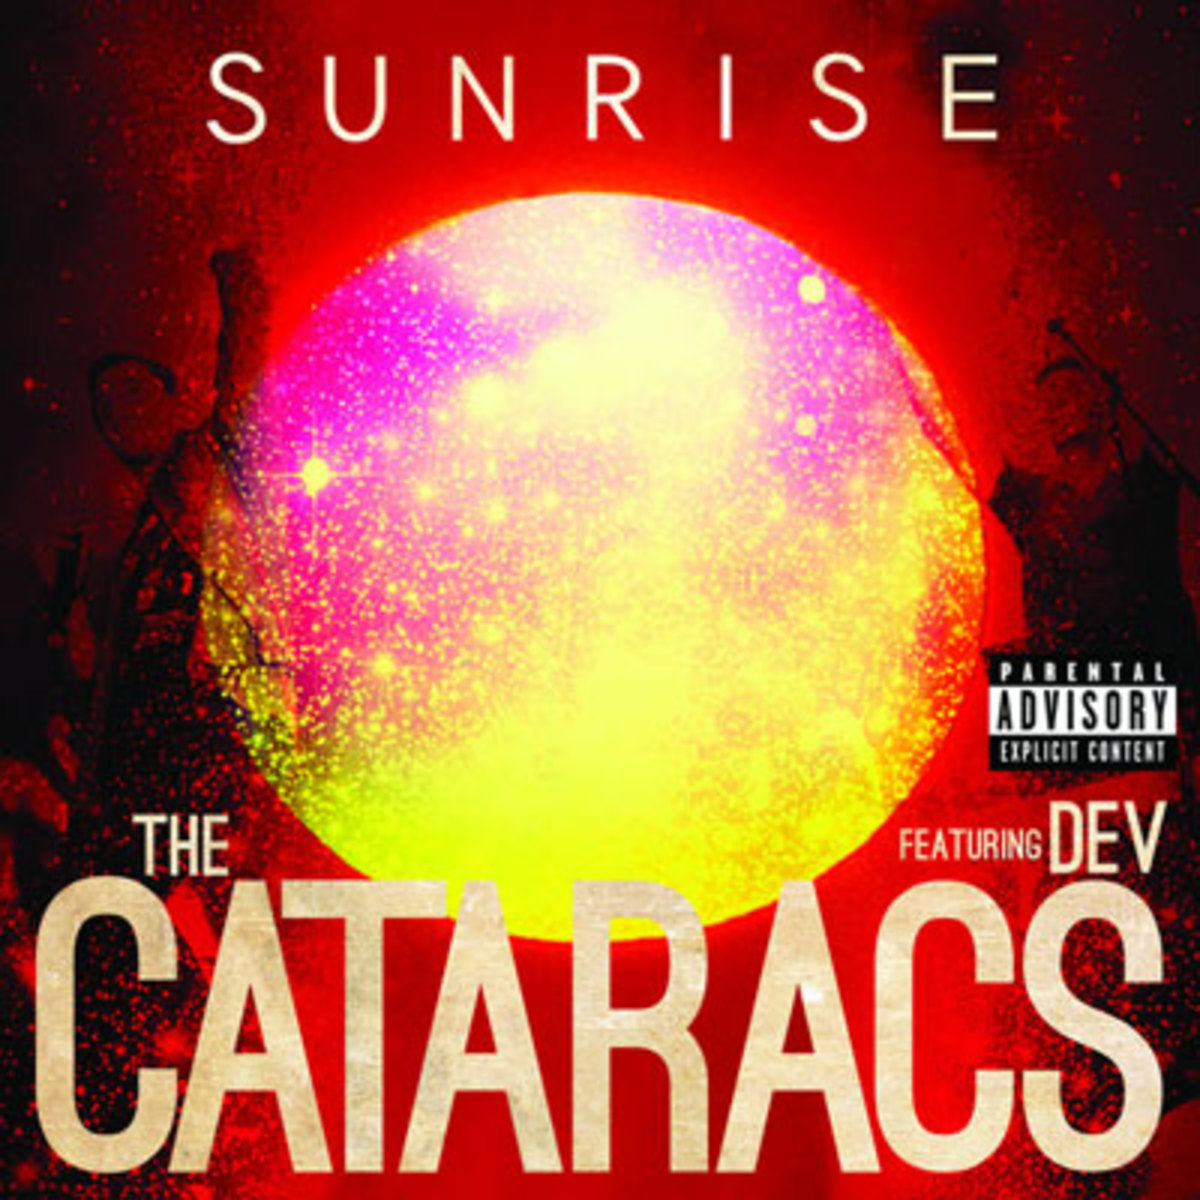 thecataracts-sunrise.jpg